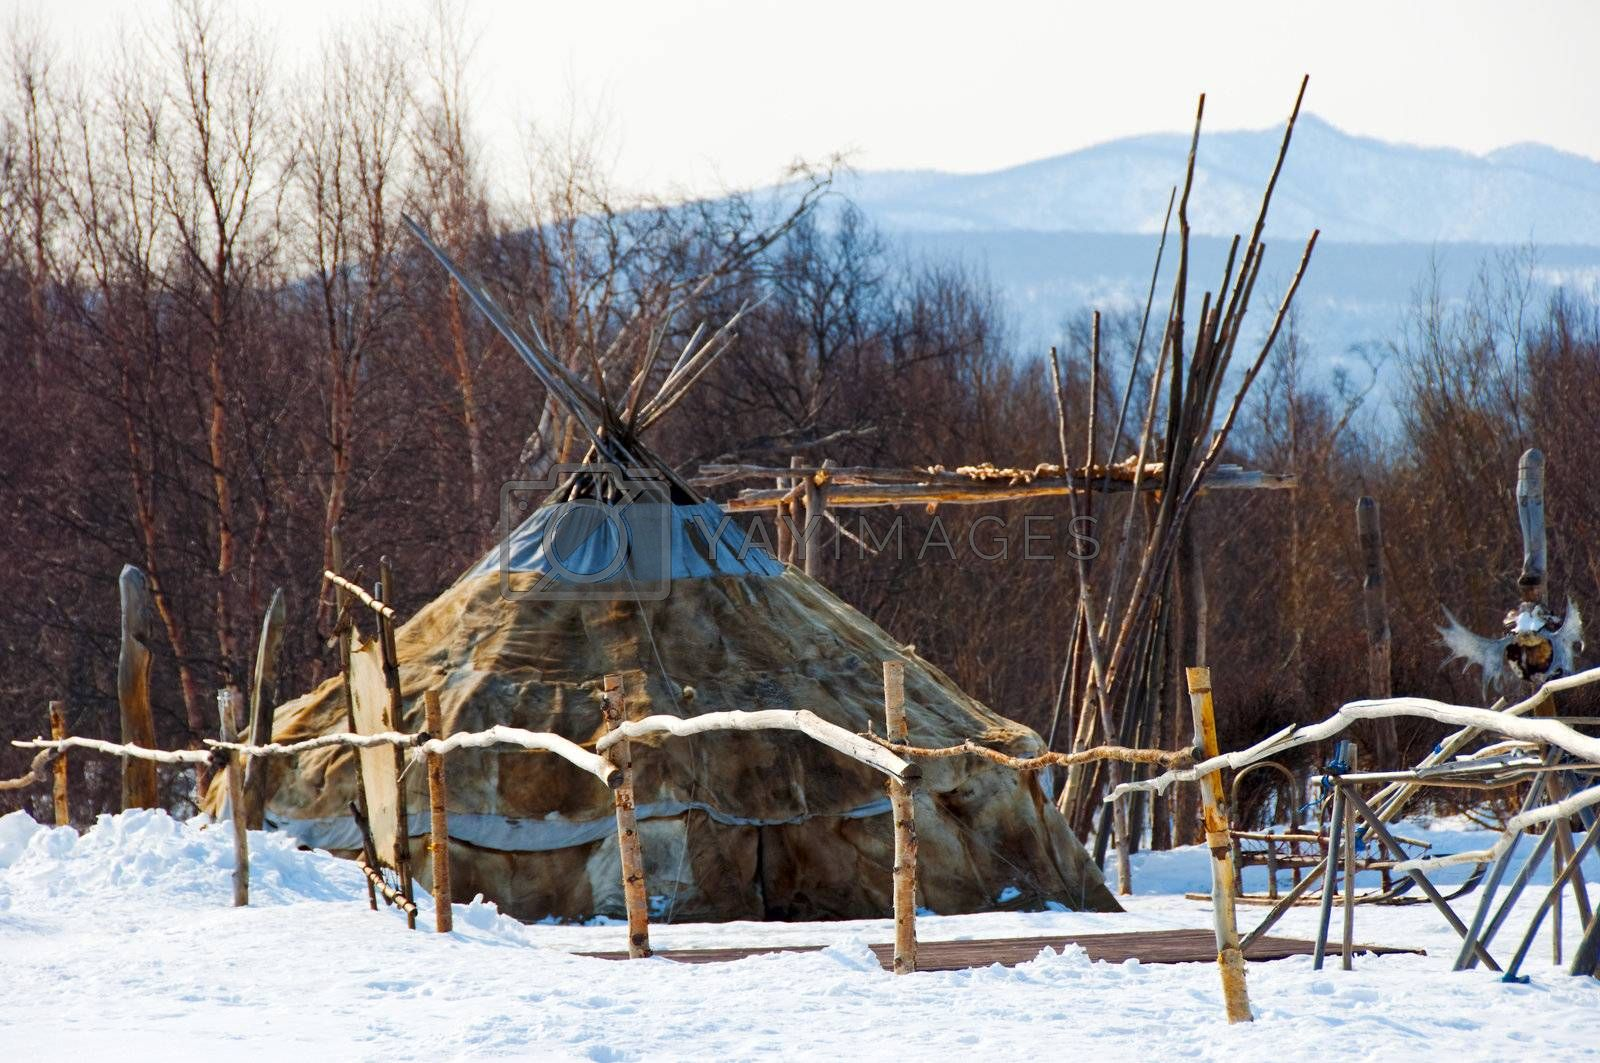 Aboriginals house of northern part of Russia on Kamchatka